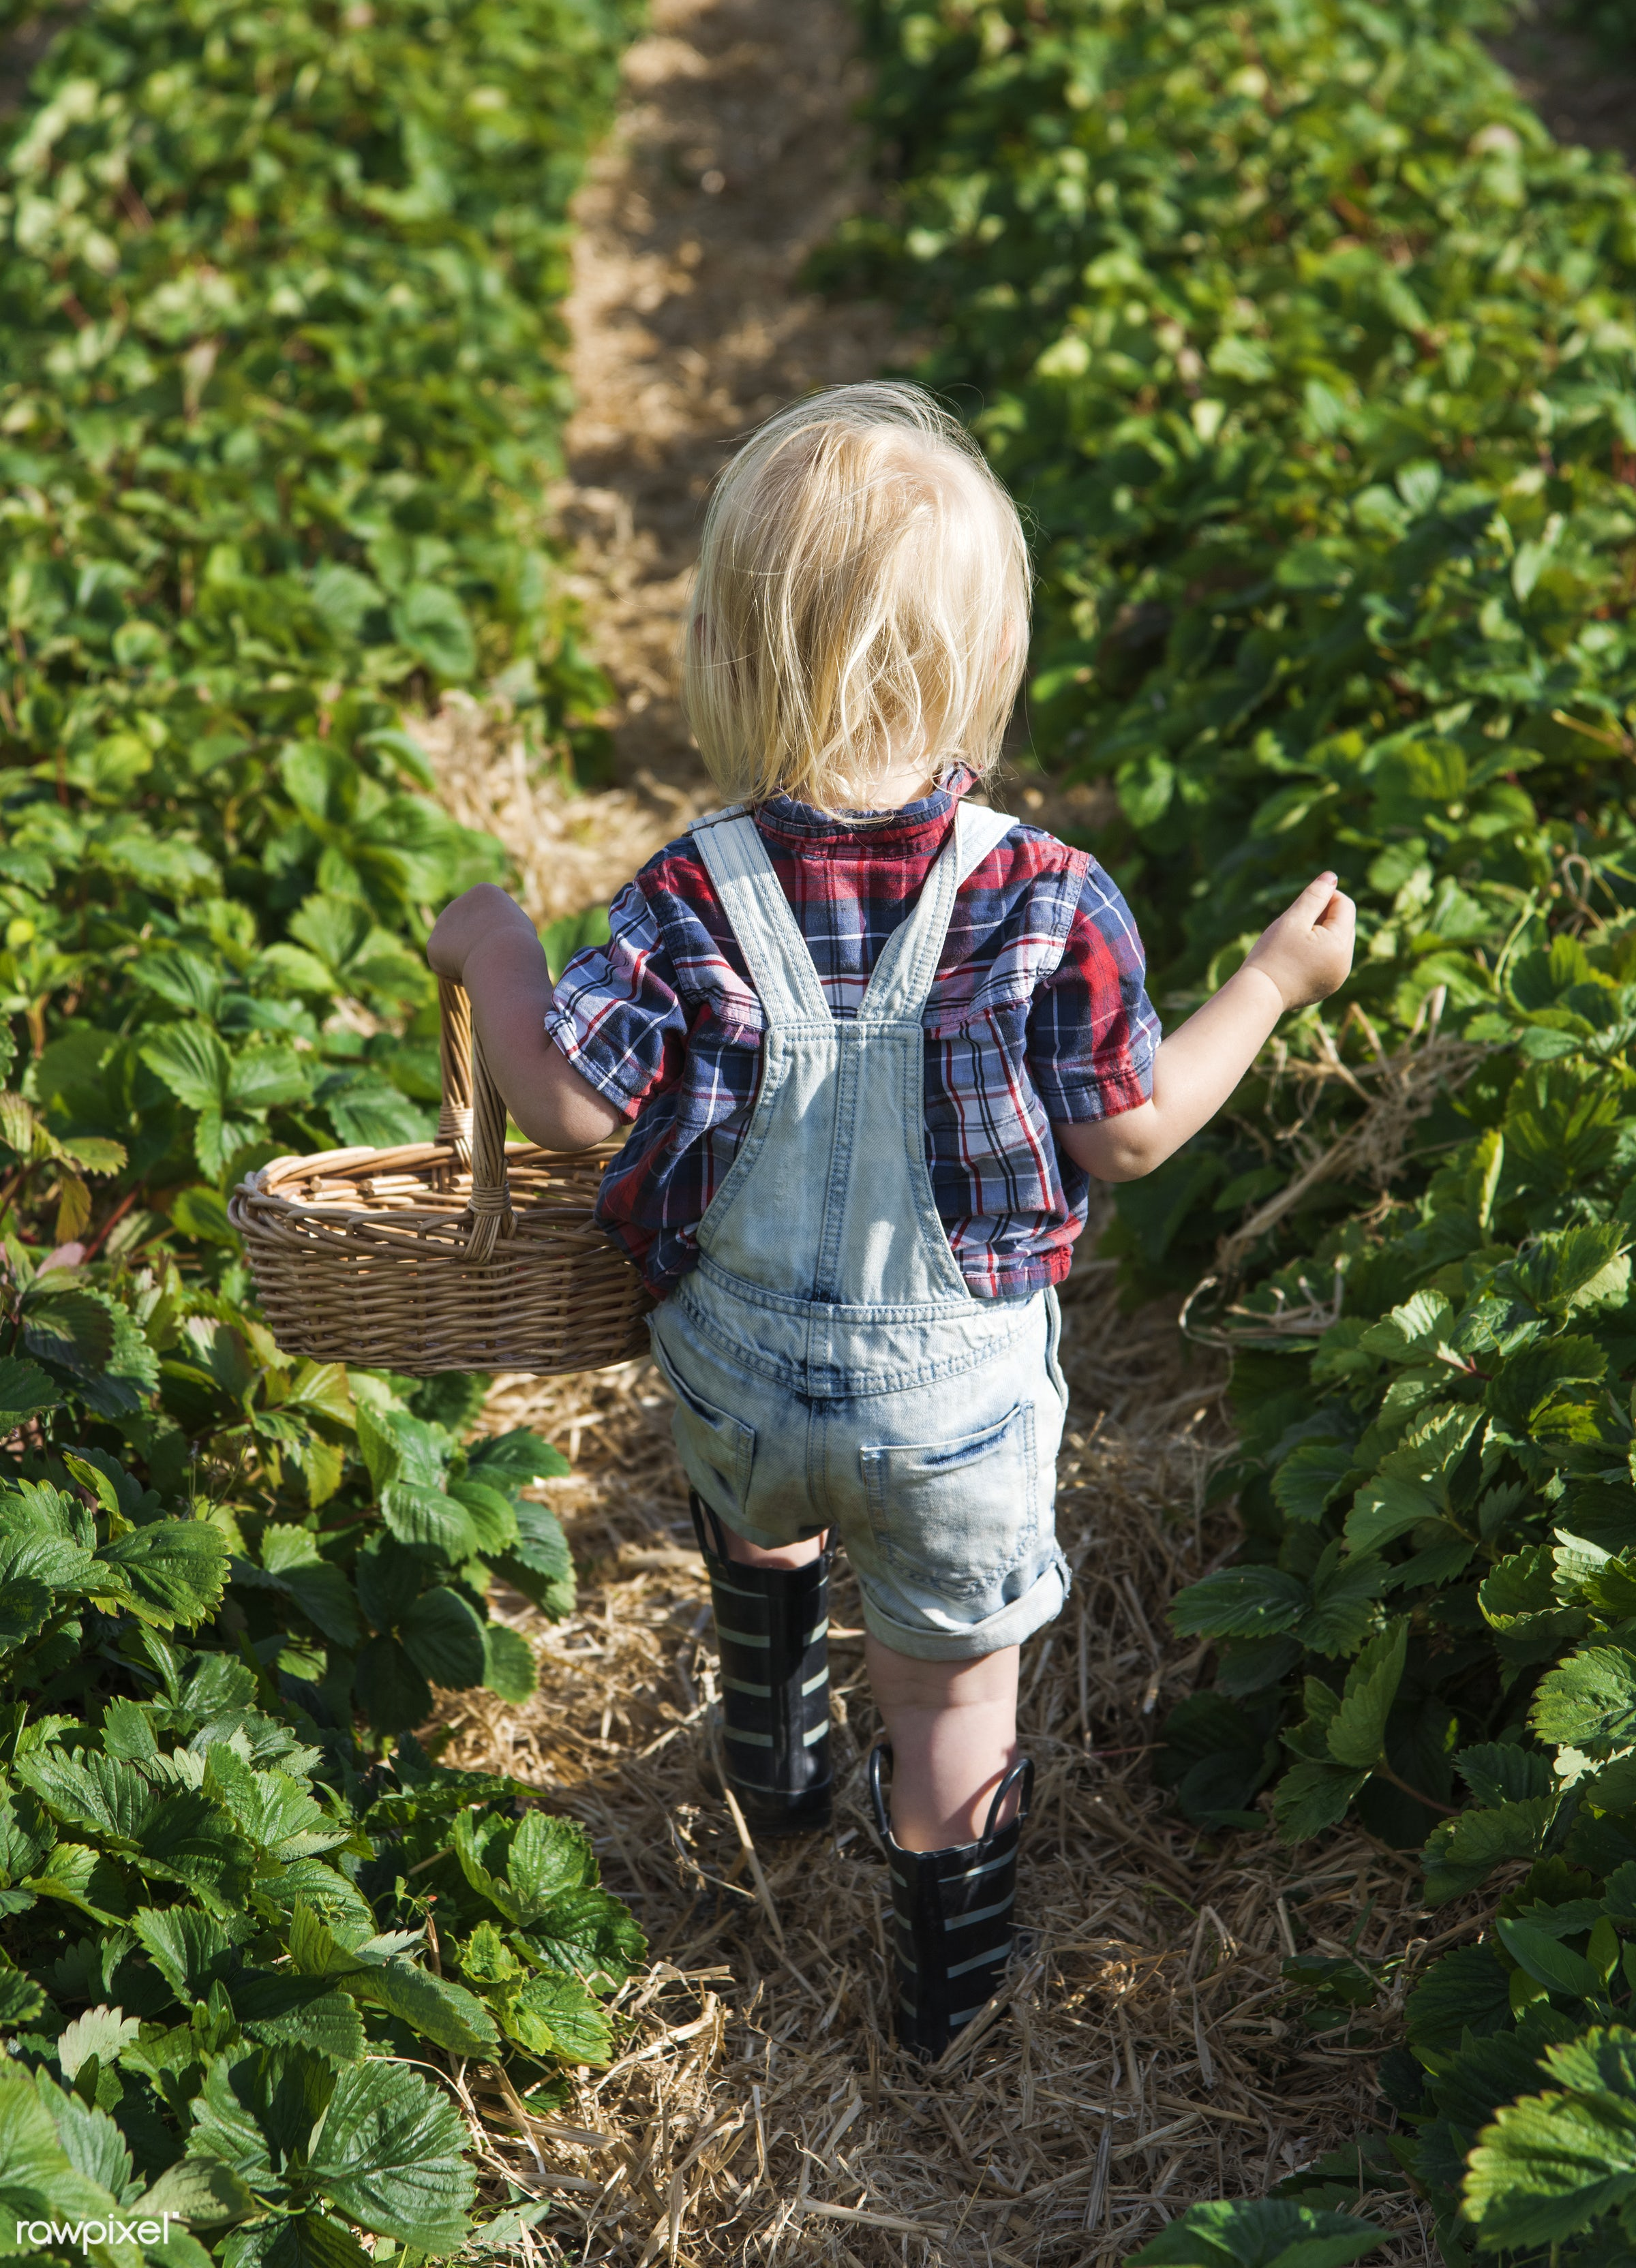 Kid in strawberry farm - alone, backyard, botany, boy, caucasian, countryside, cultivate, farm, field, fresh, fruit, garden...